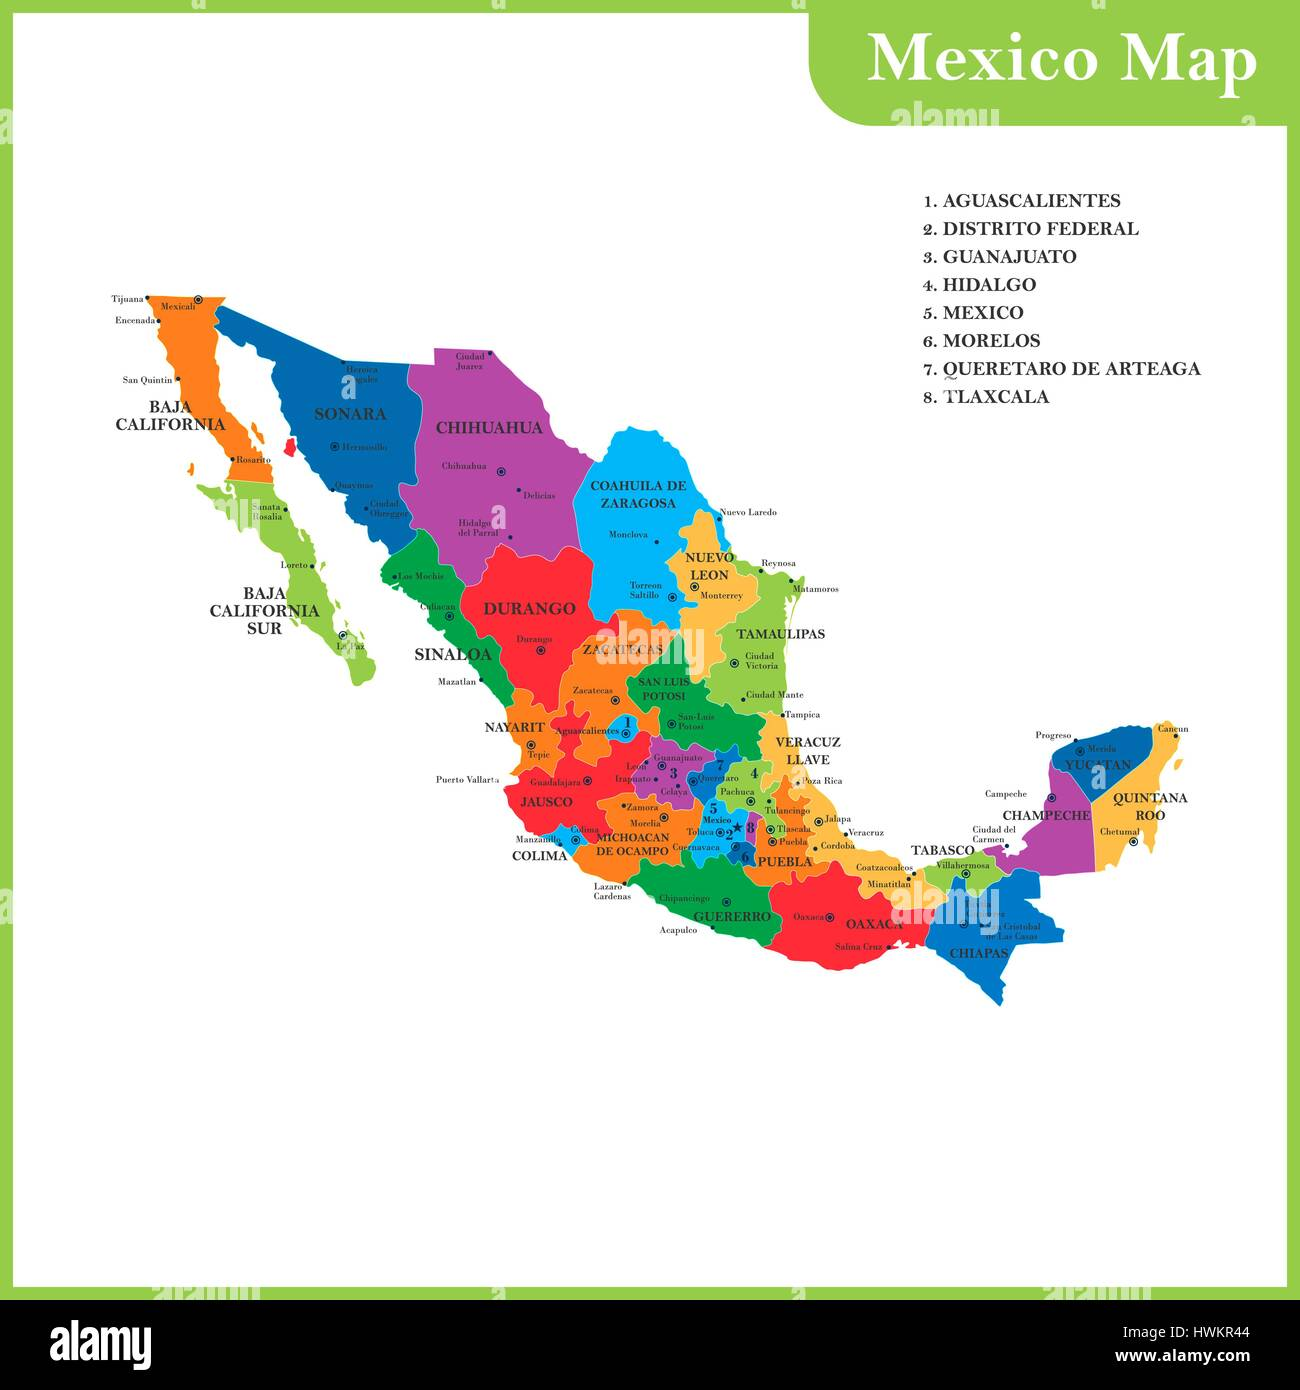 The Detailed Map Of The Mexico With Regions Or States And Cities - Mexico regions map